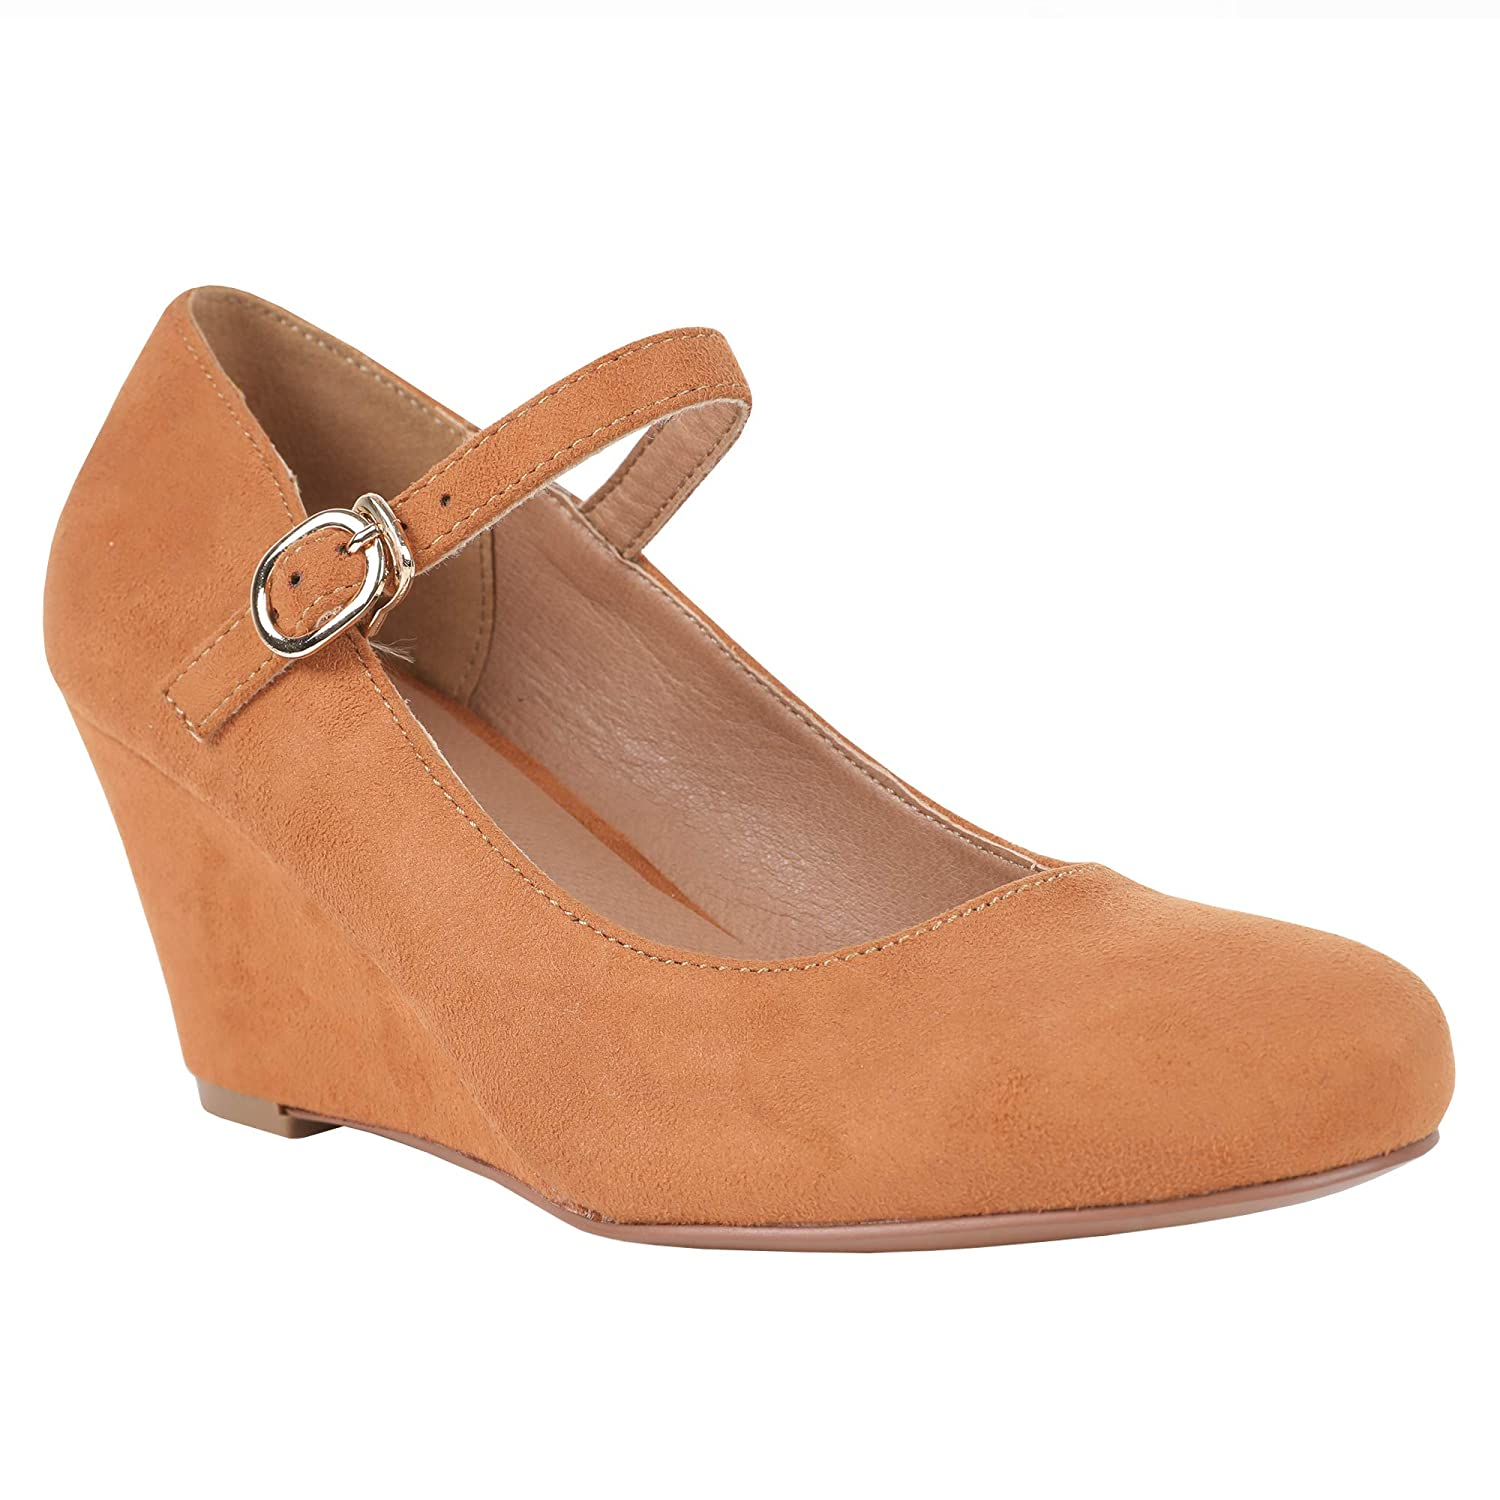 Brown Womens Mary Jane Wedge Pumps Closed Toe Ankle Strap Mid Heel Office Work shoes